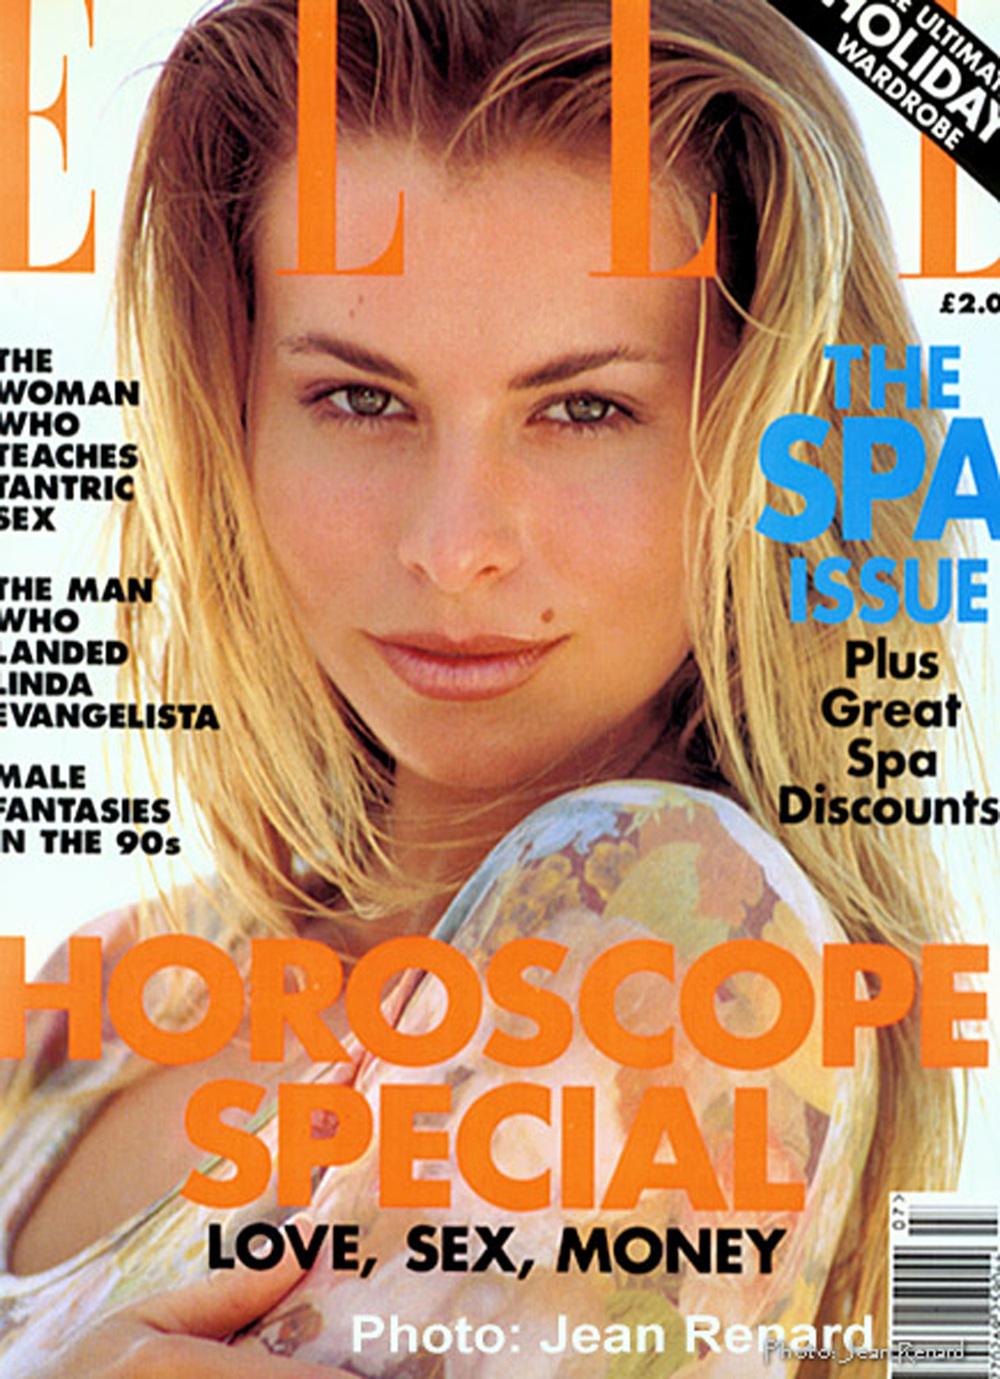 My first British Elle Magazine cover. I was so excited.